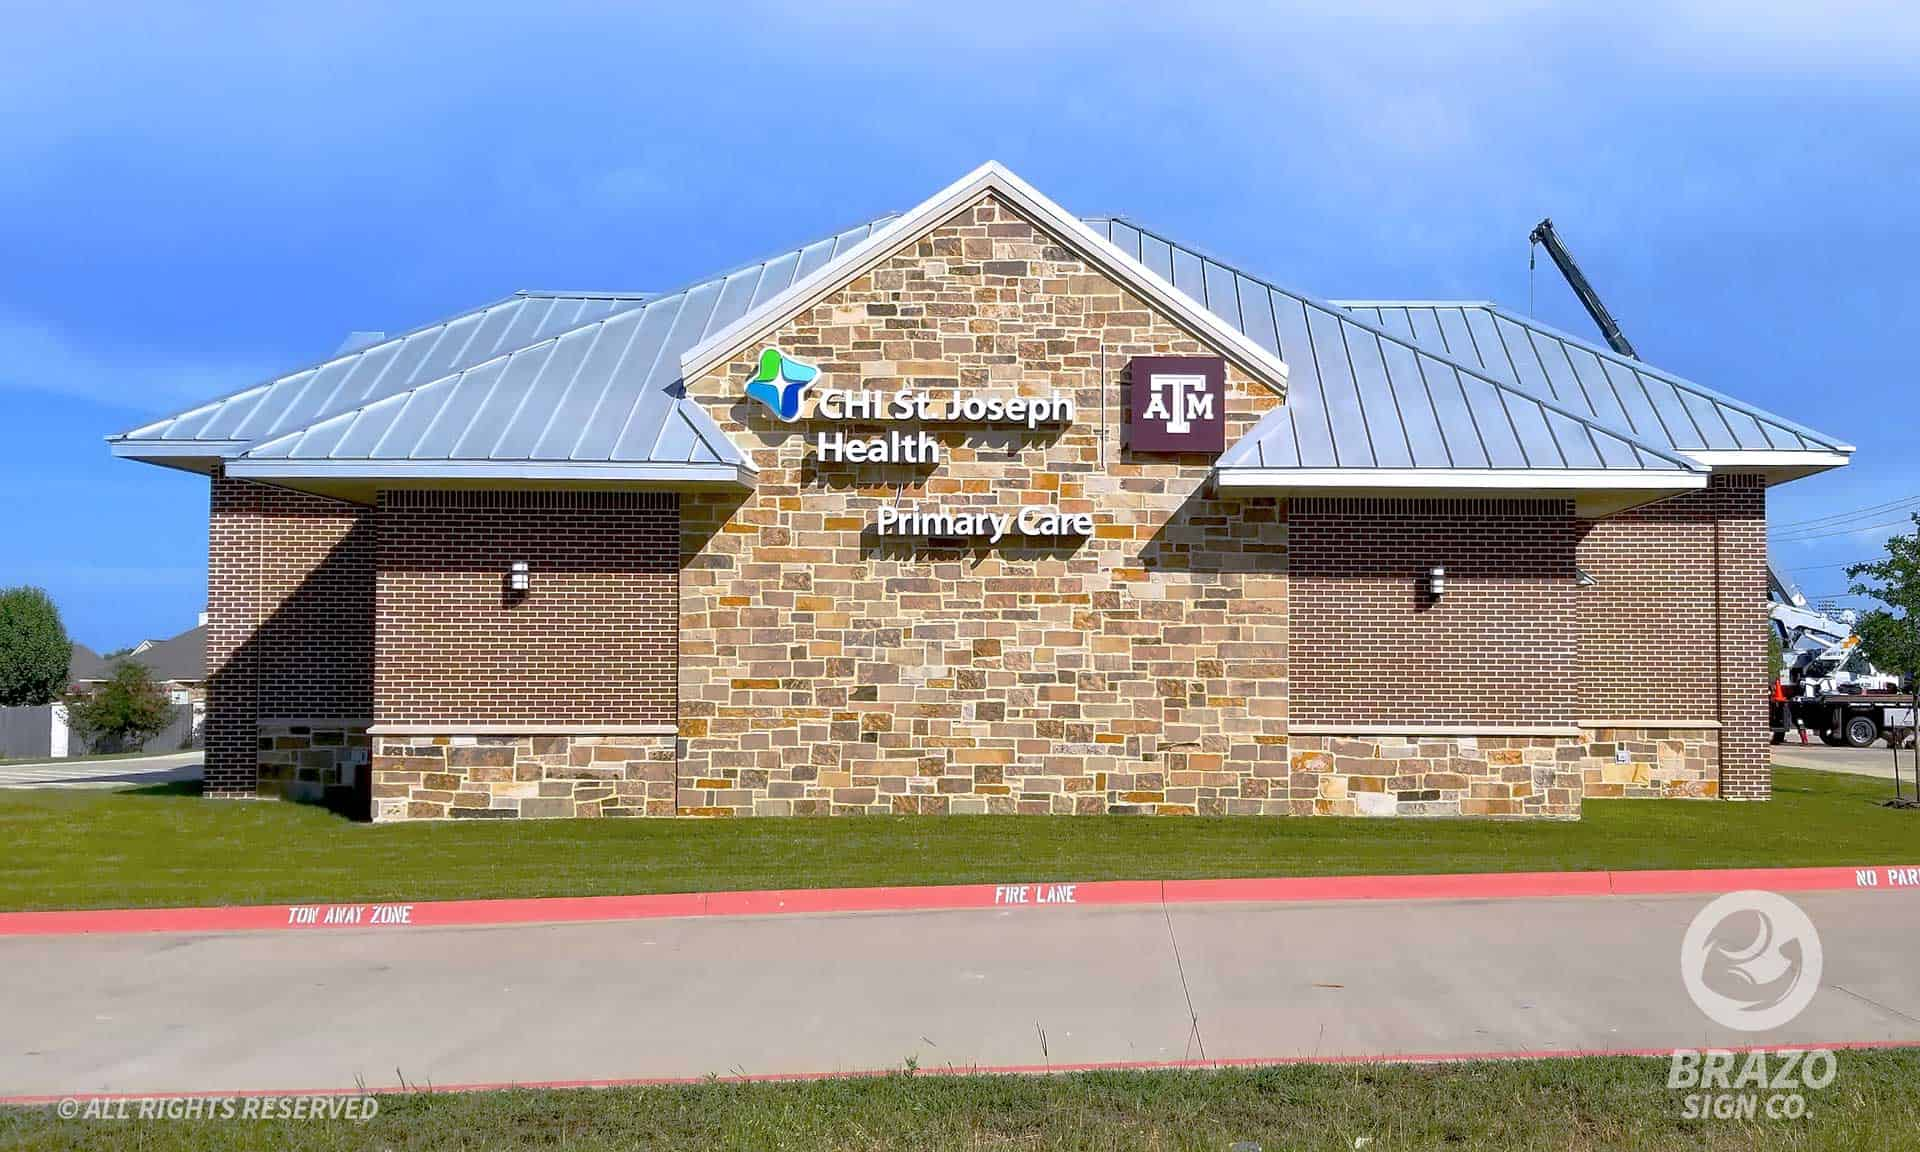 medical-illuminated-channel-letters-college-station-texas-st-joseph-texas-a-m-installation-2-completed